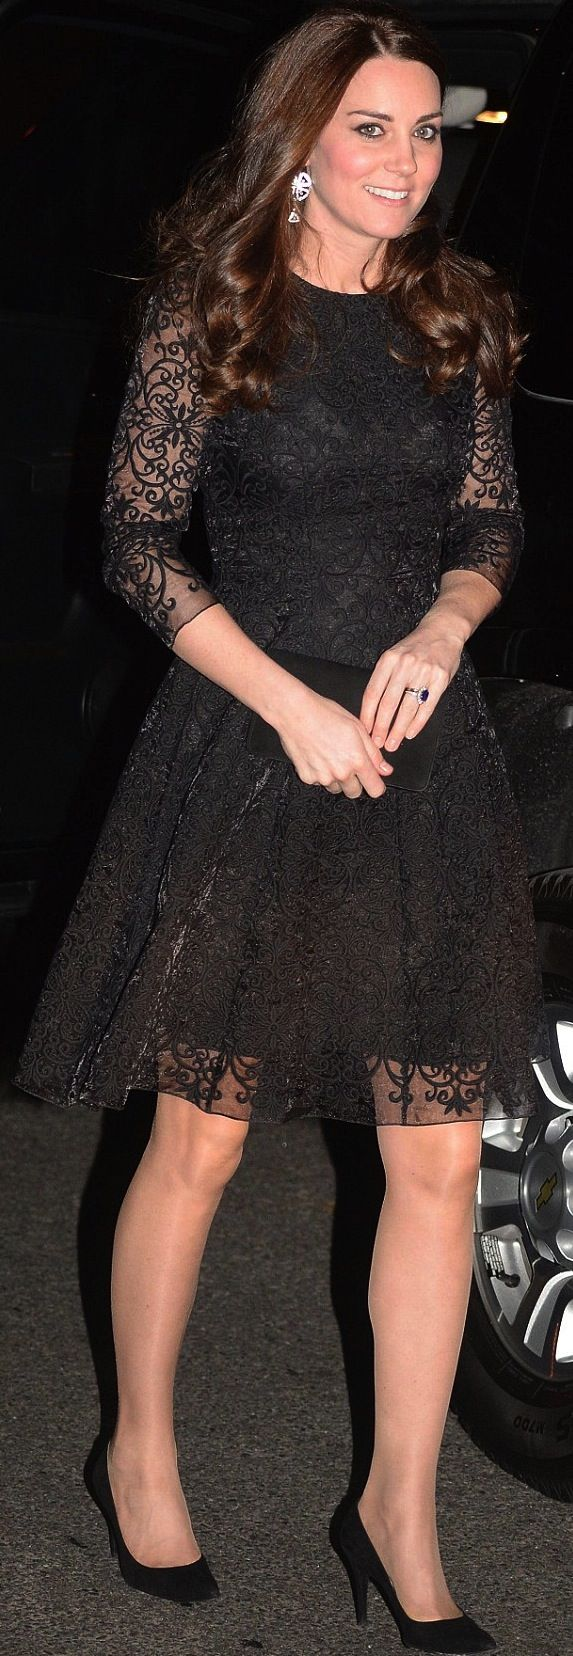 Kate Middleton wearing black lace on her first visit to NYC